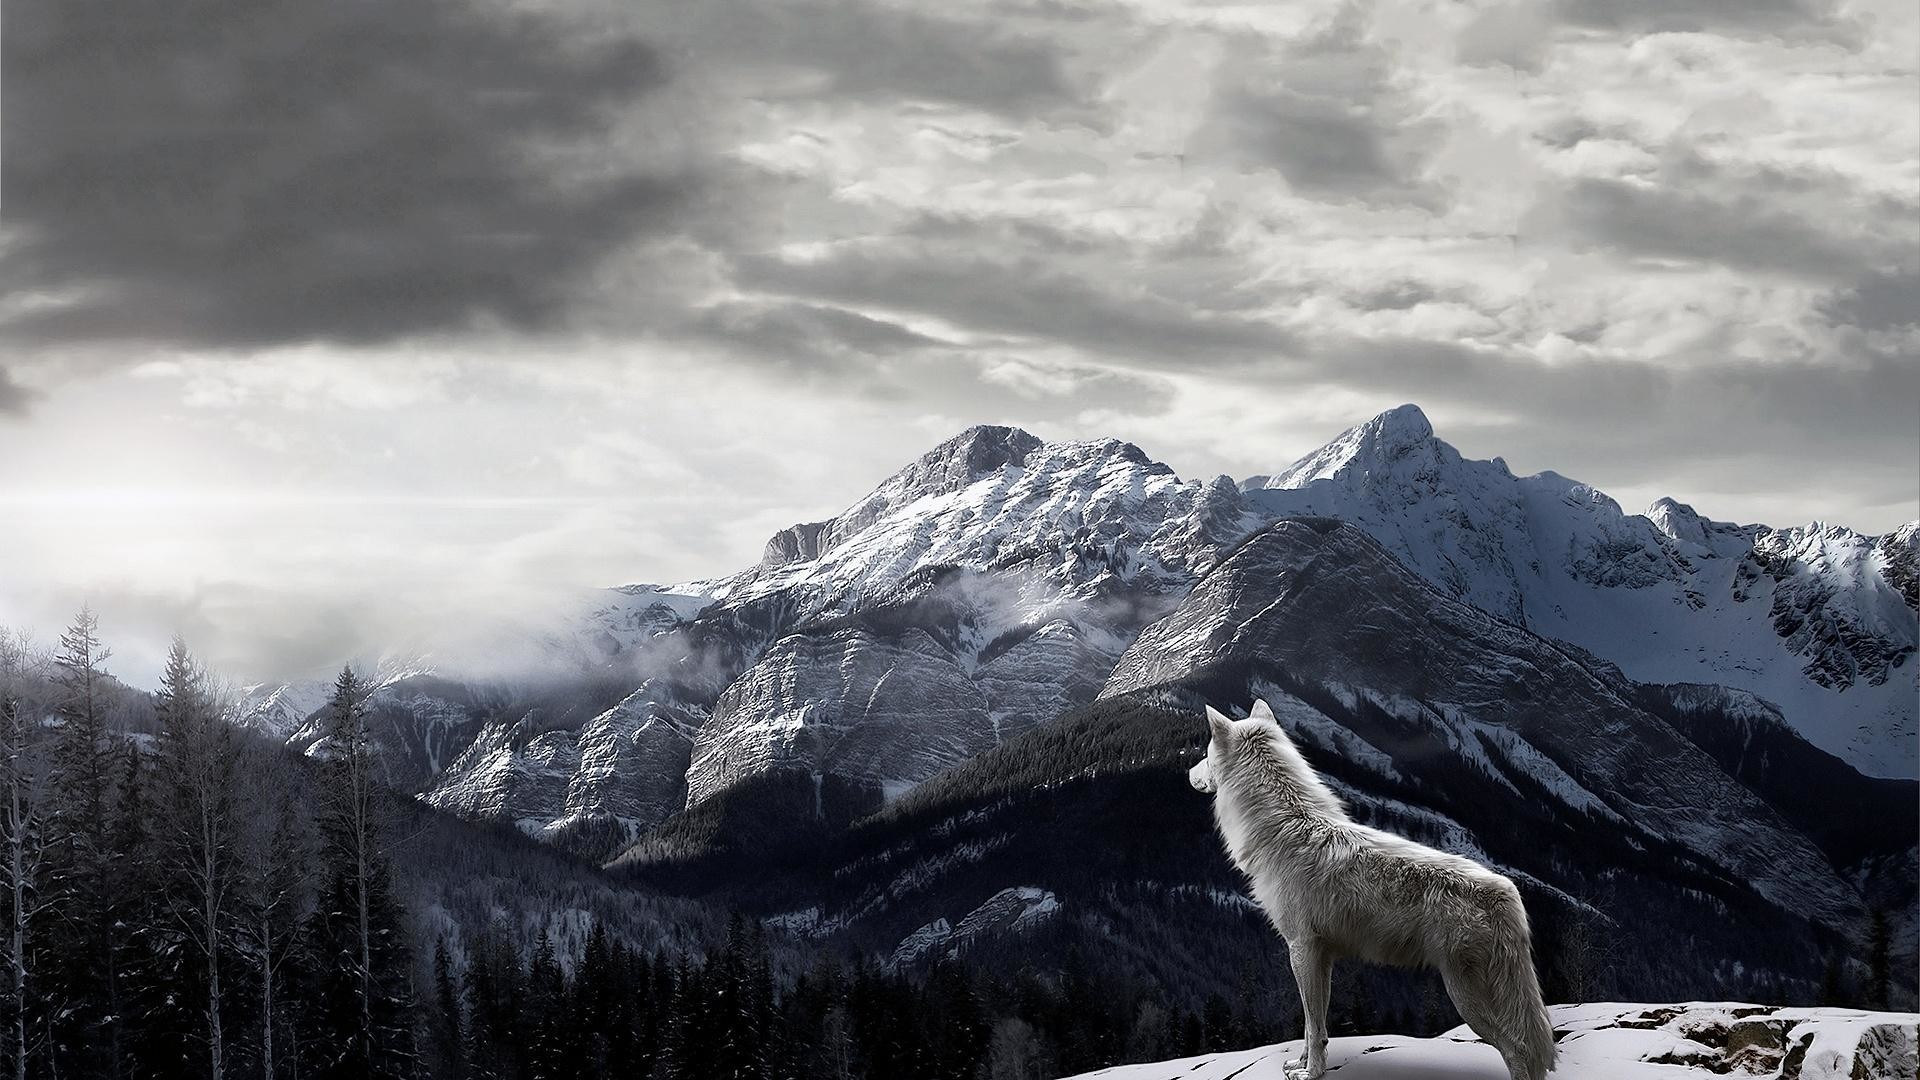 Good Wallpaper Mac Wolf - 888990-lone-wolf-wallpaper-1920x1080-macbook  Snapshot_857926.jpg